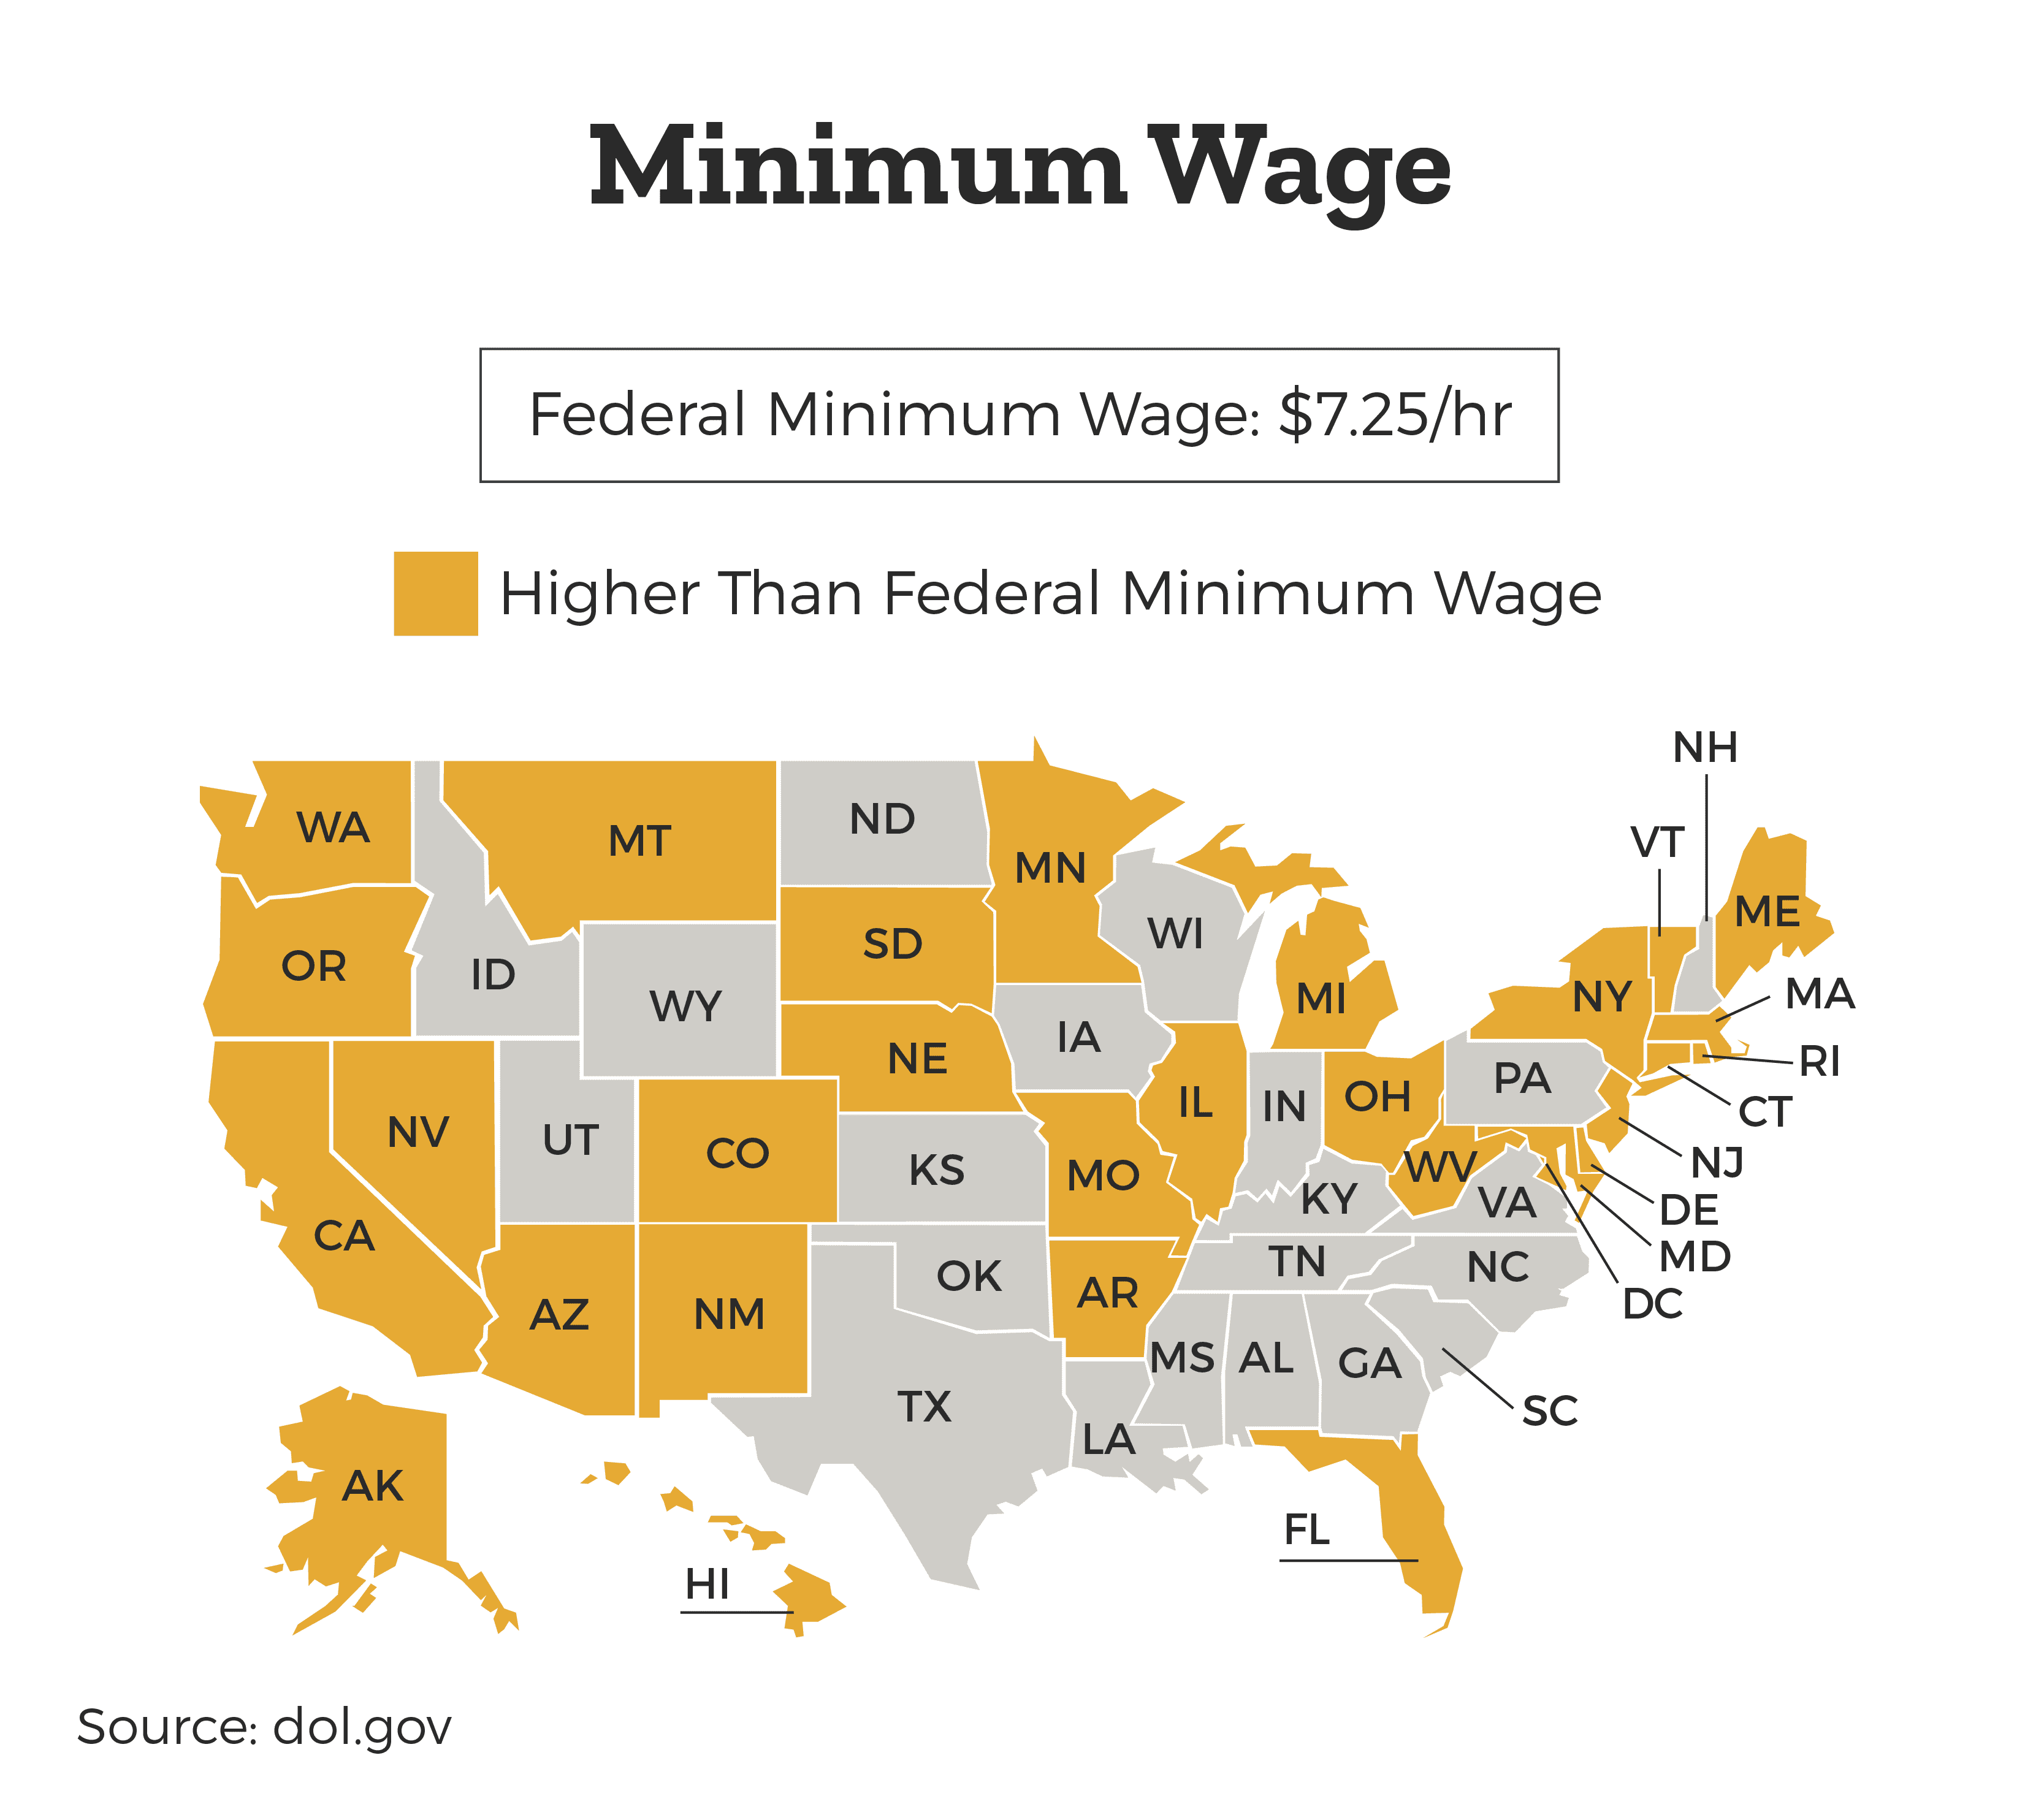 Minimum Wage Gap by State - A US map showing which states have a higher state minimum wage compared to the federal minimum wage.